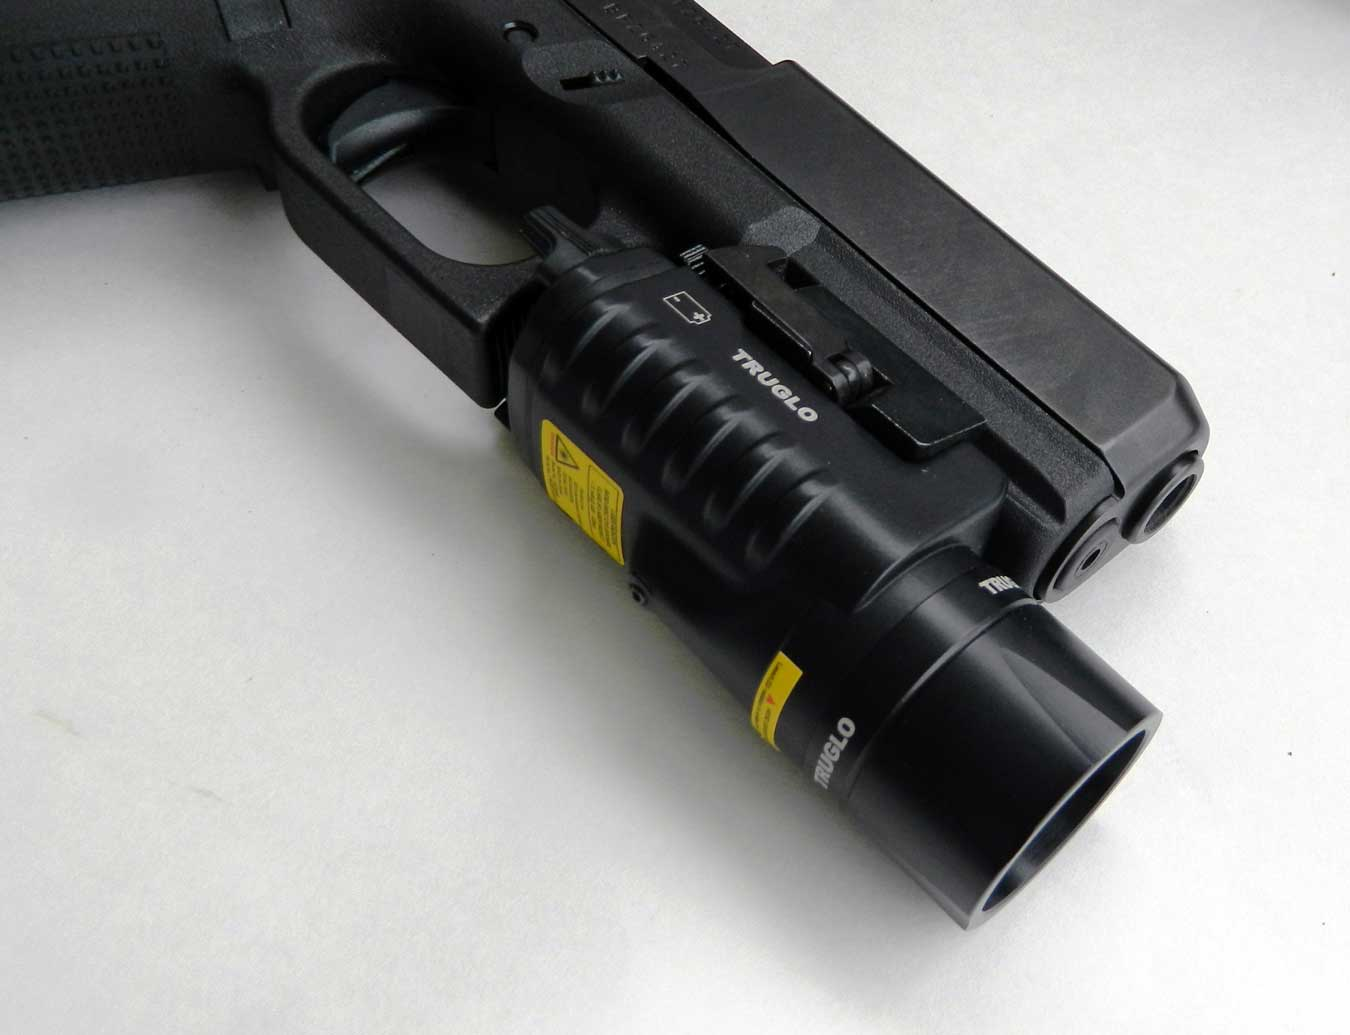 TruGlo combat light on Glock 17 Gen 5